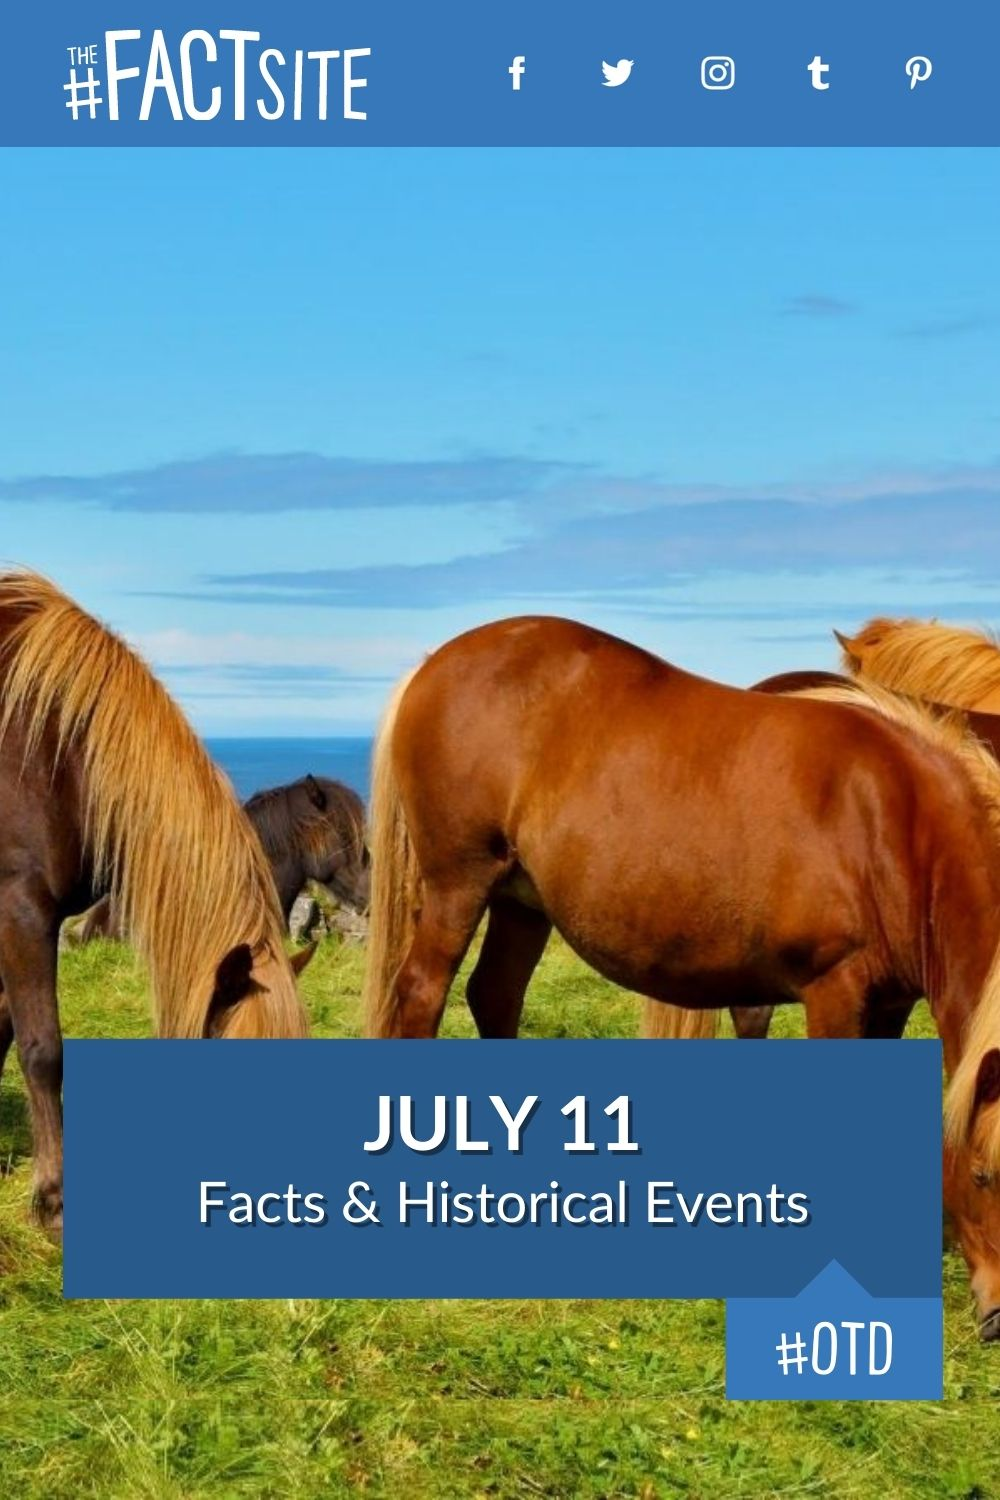 Facts & Historic Events That Happened on July 11